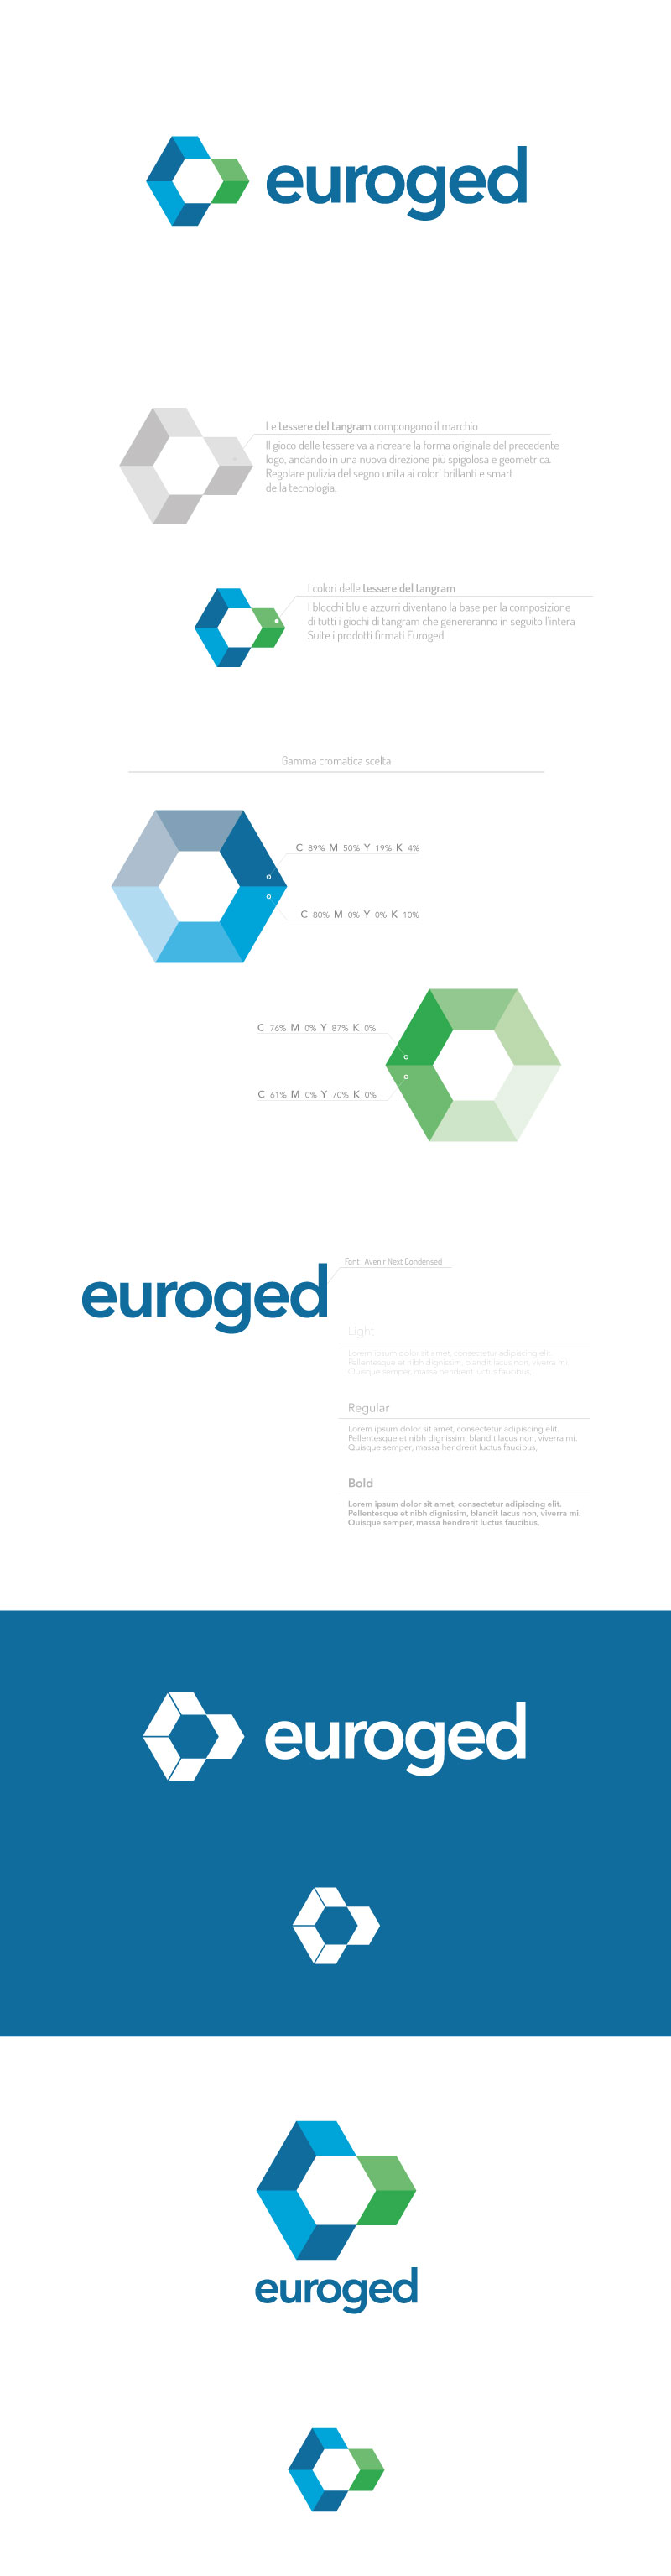 Euroged studio logo design